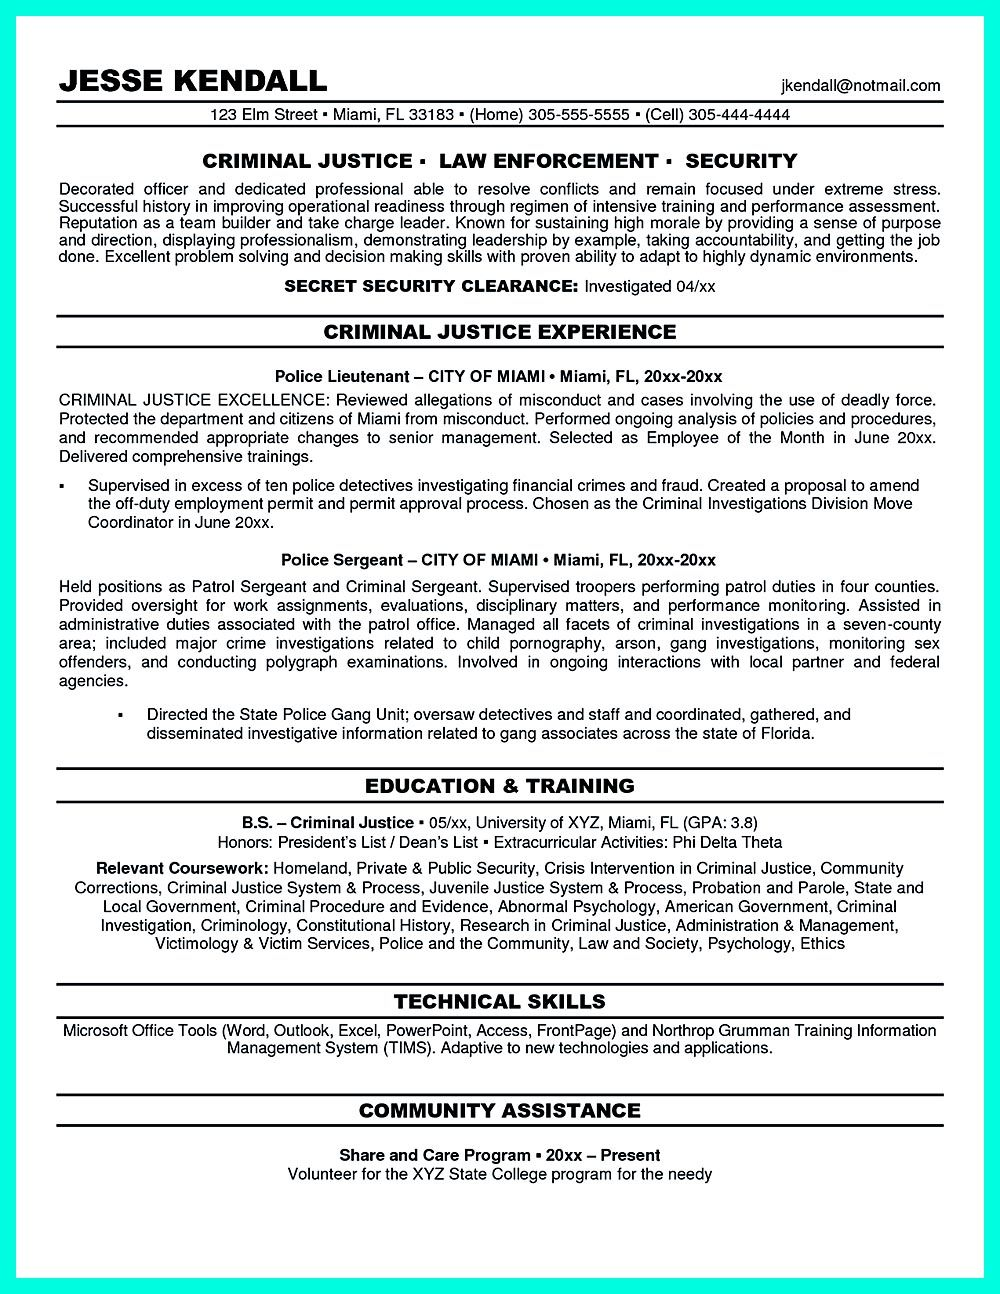 Criminal Justice Resume Uses Summary Section Of The Qualifications